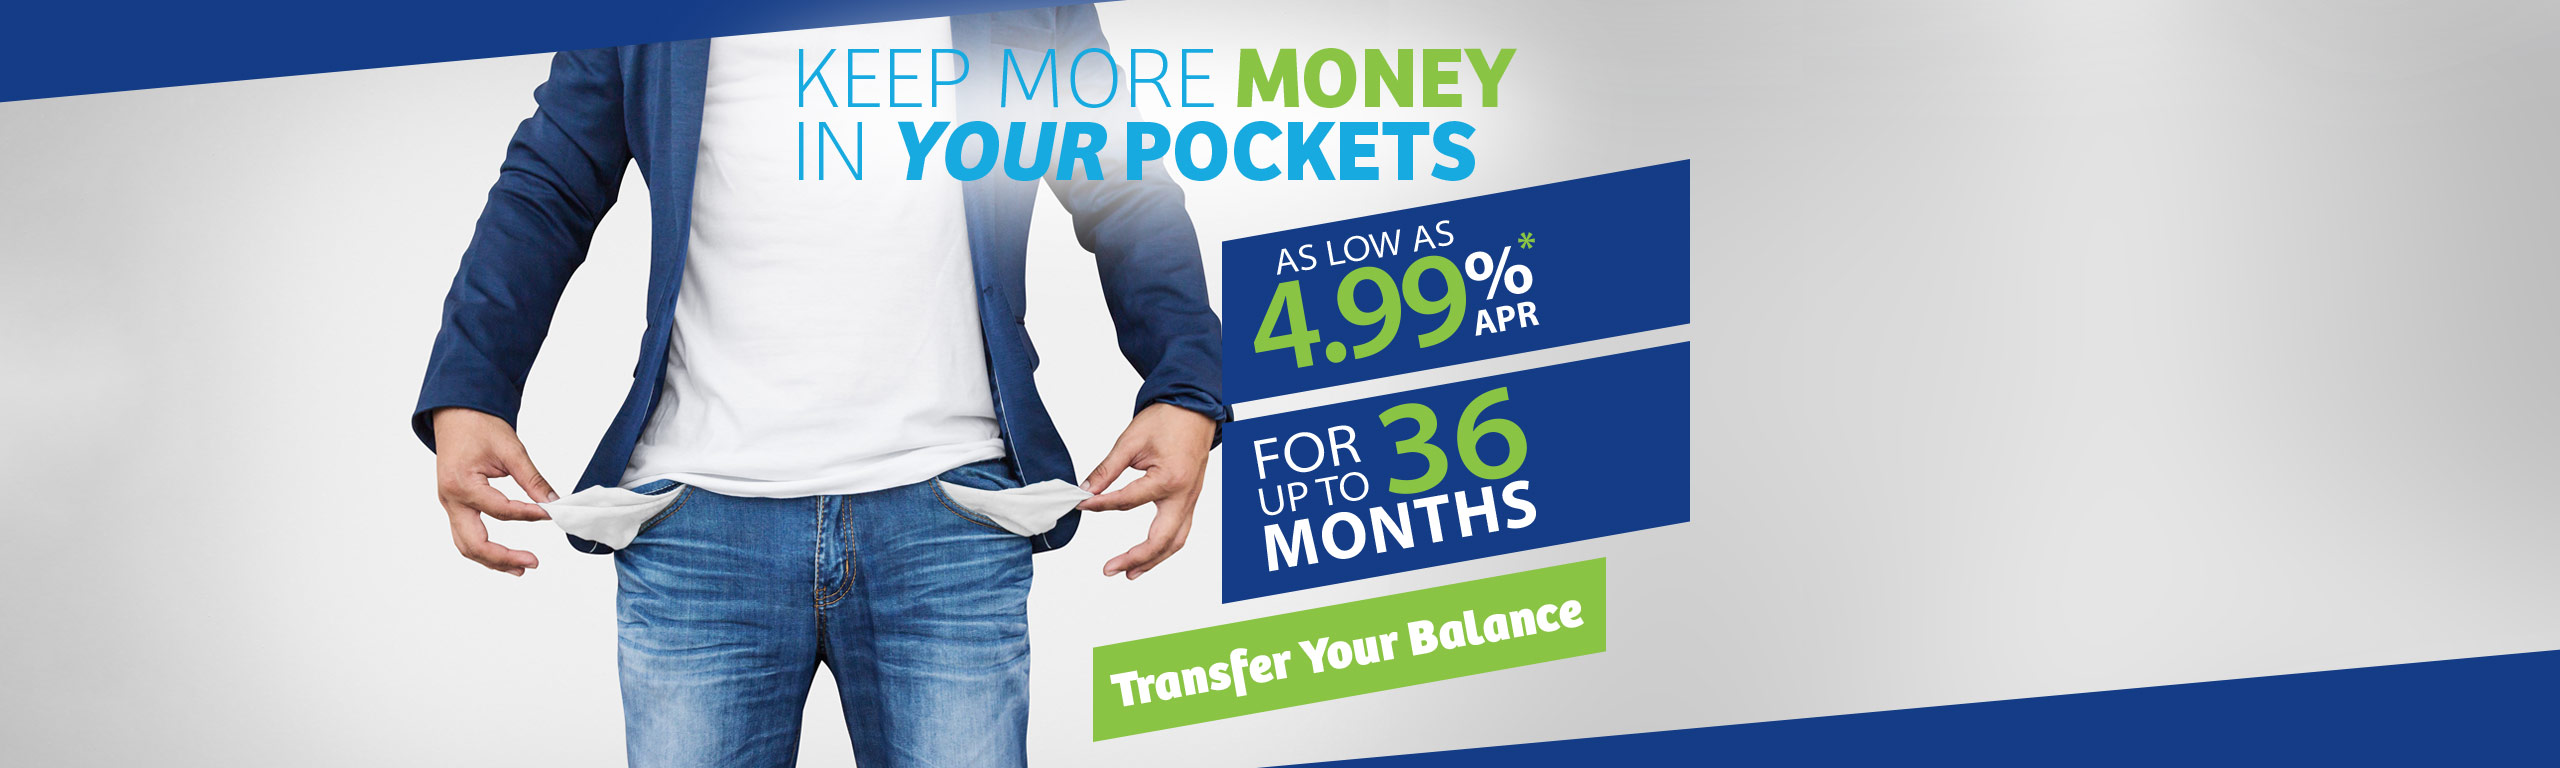 Keep More Money In Your Pockets with a Credit Card Balance Transfer